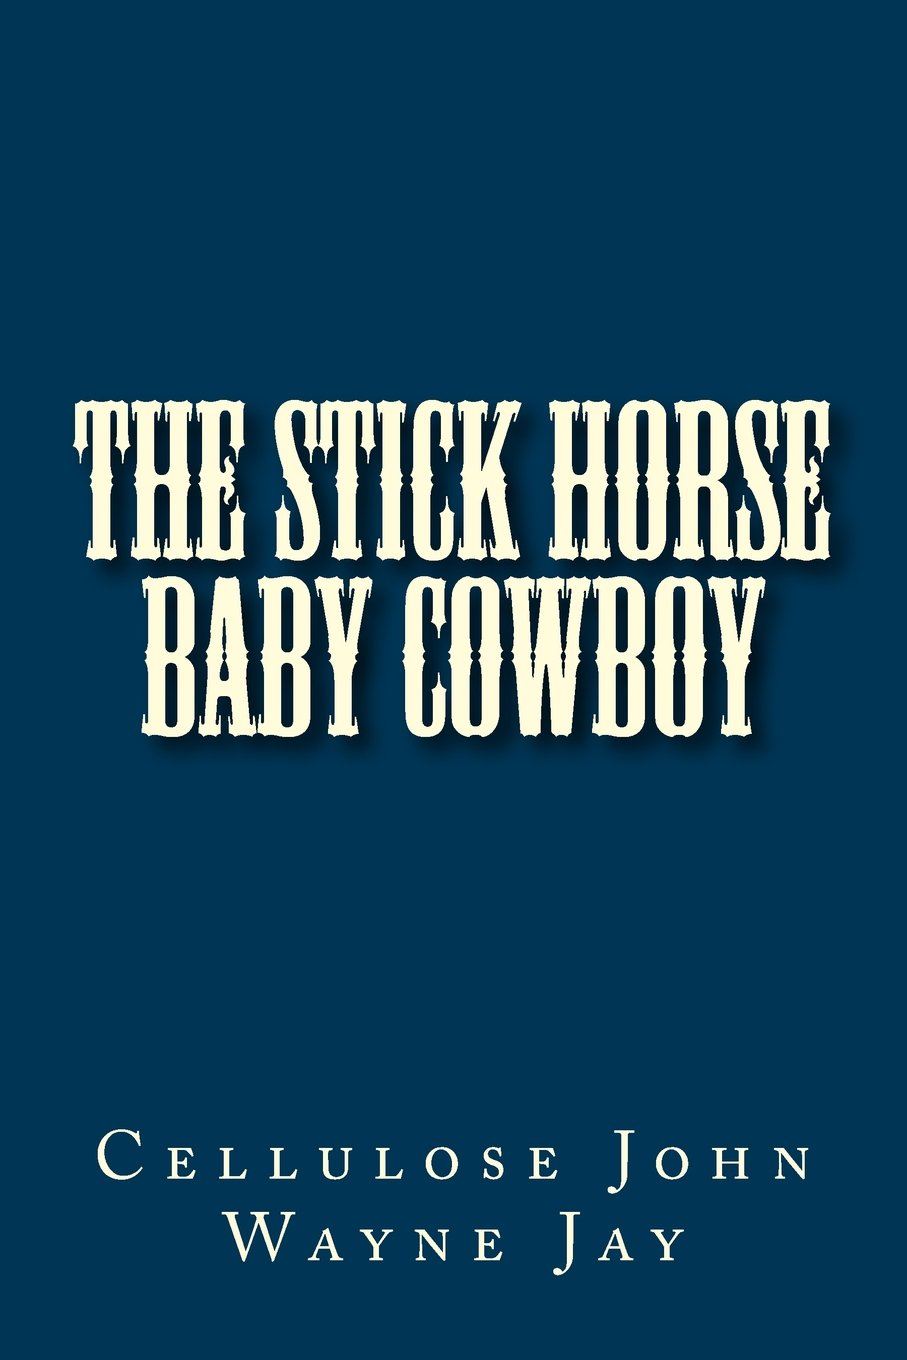 Download The Stick Horse Baby Cowboy pdf